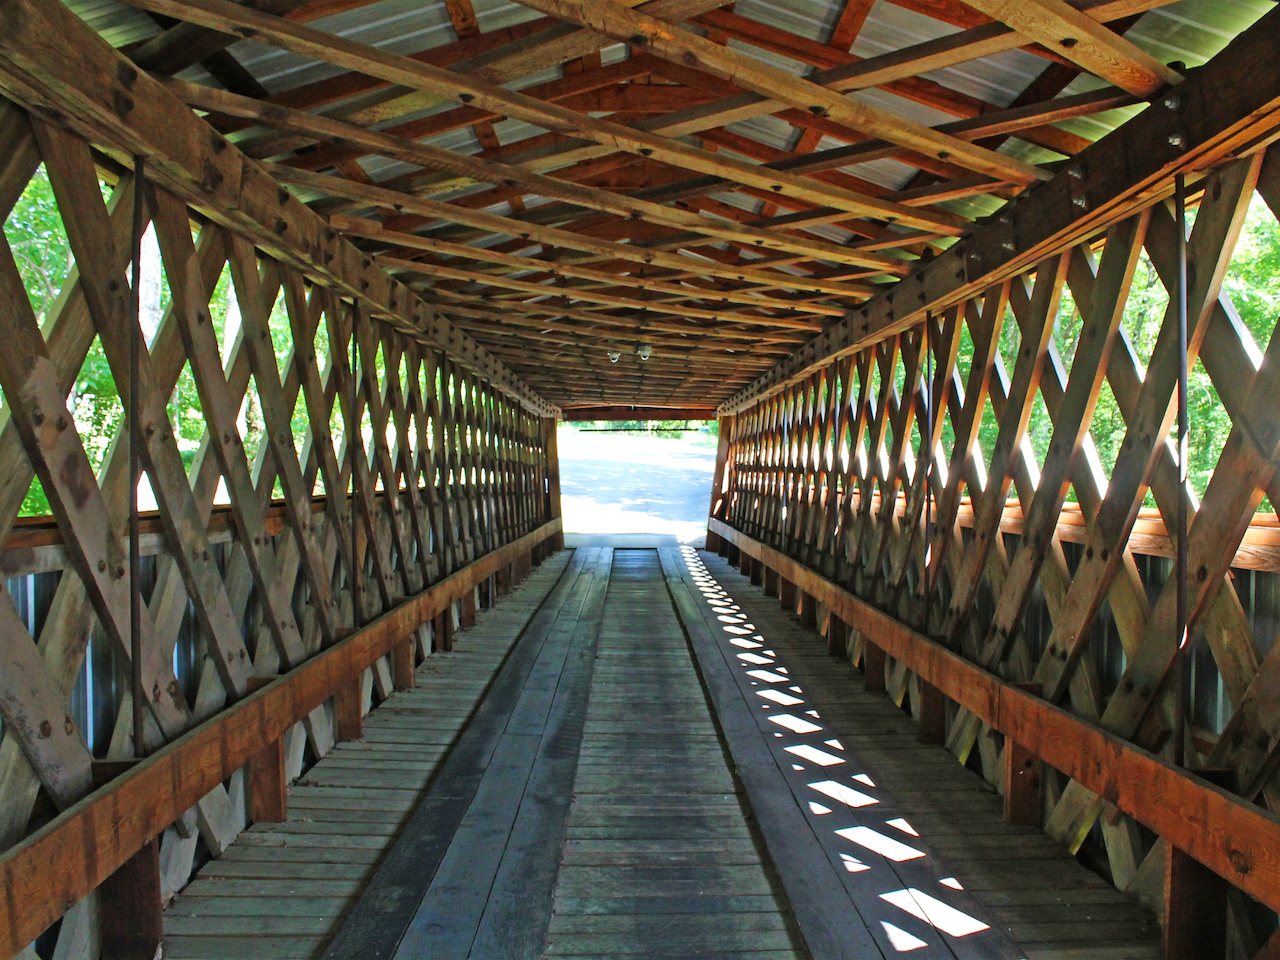 The interior of a covered bridge offers respite from the summer sun!